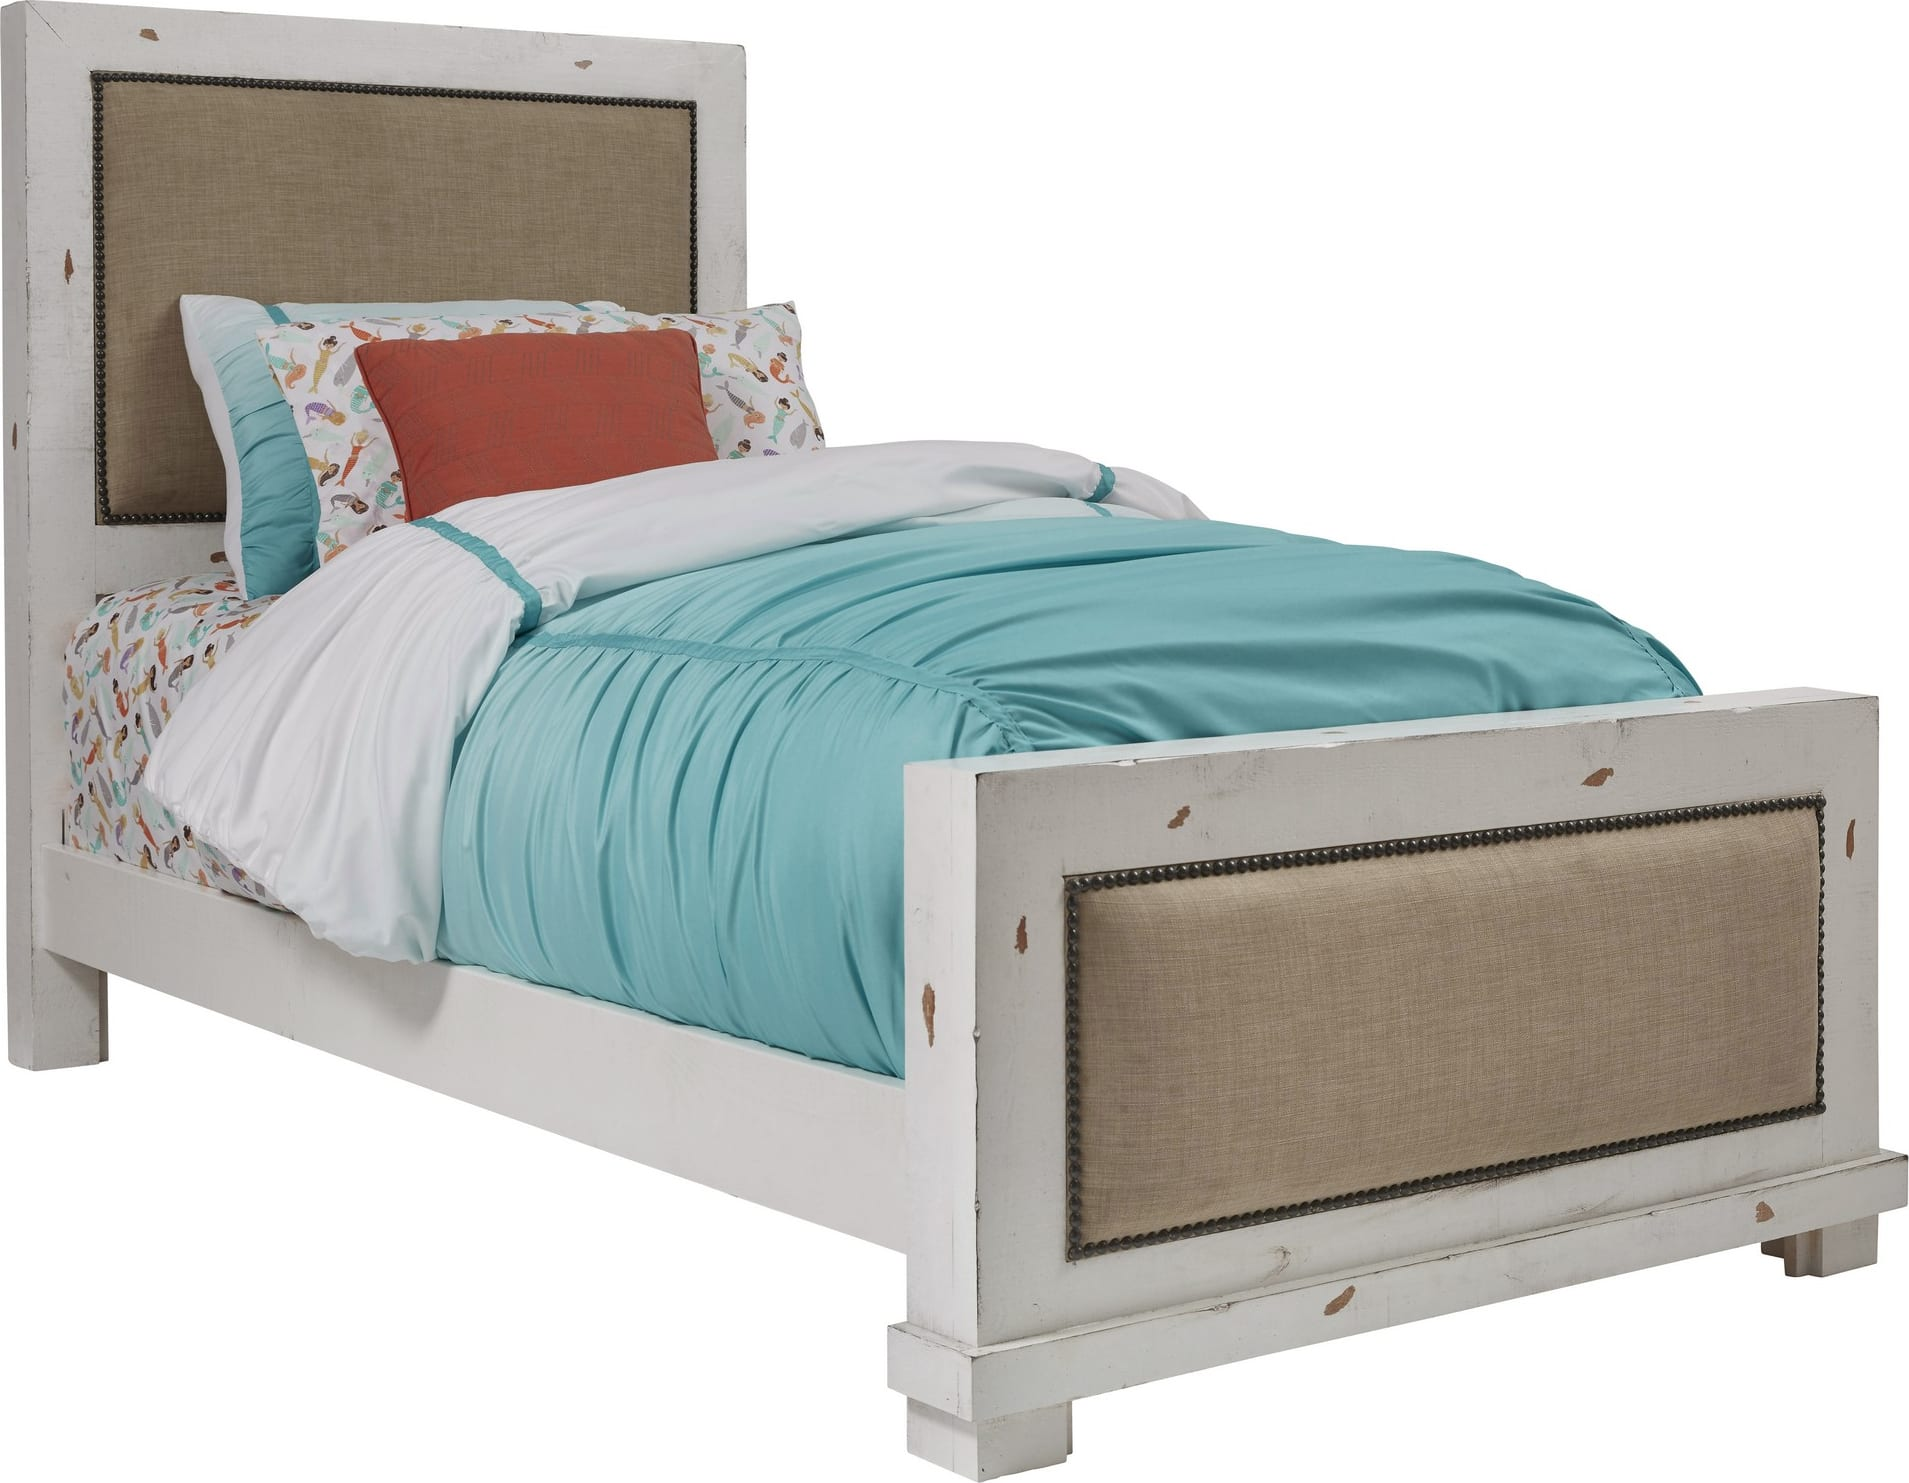 Progressive Willow Distressed White Complete Twin Upholstered Bed P610 25 26 27 Goedekers Com